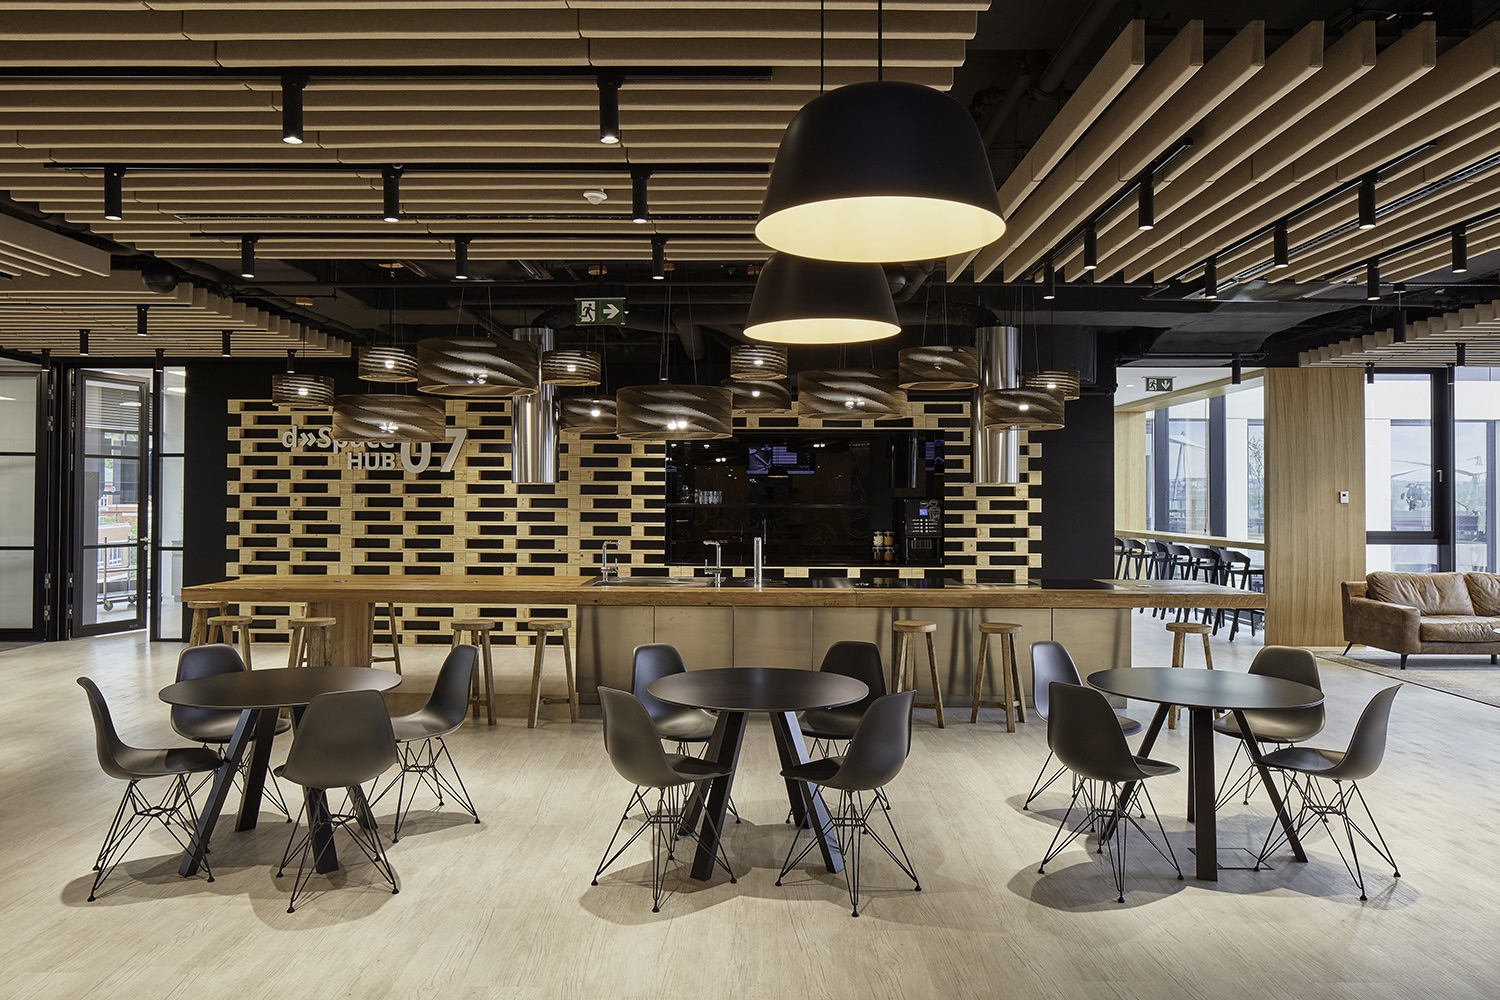 deloitte-prague-office-8